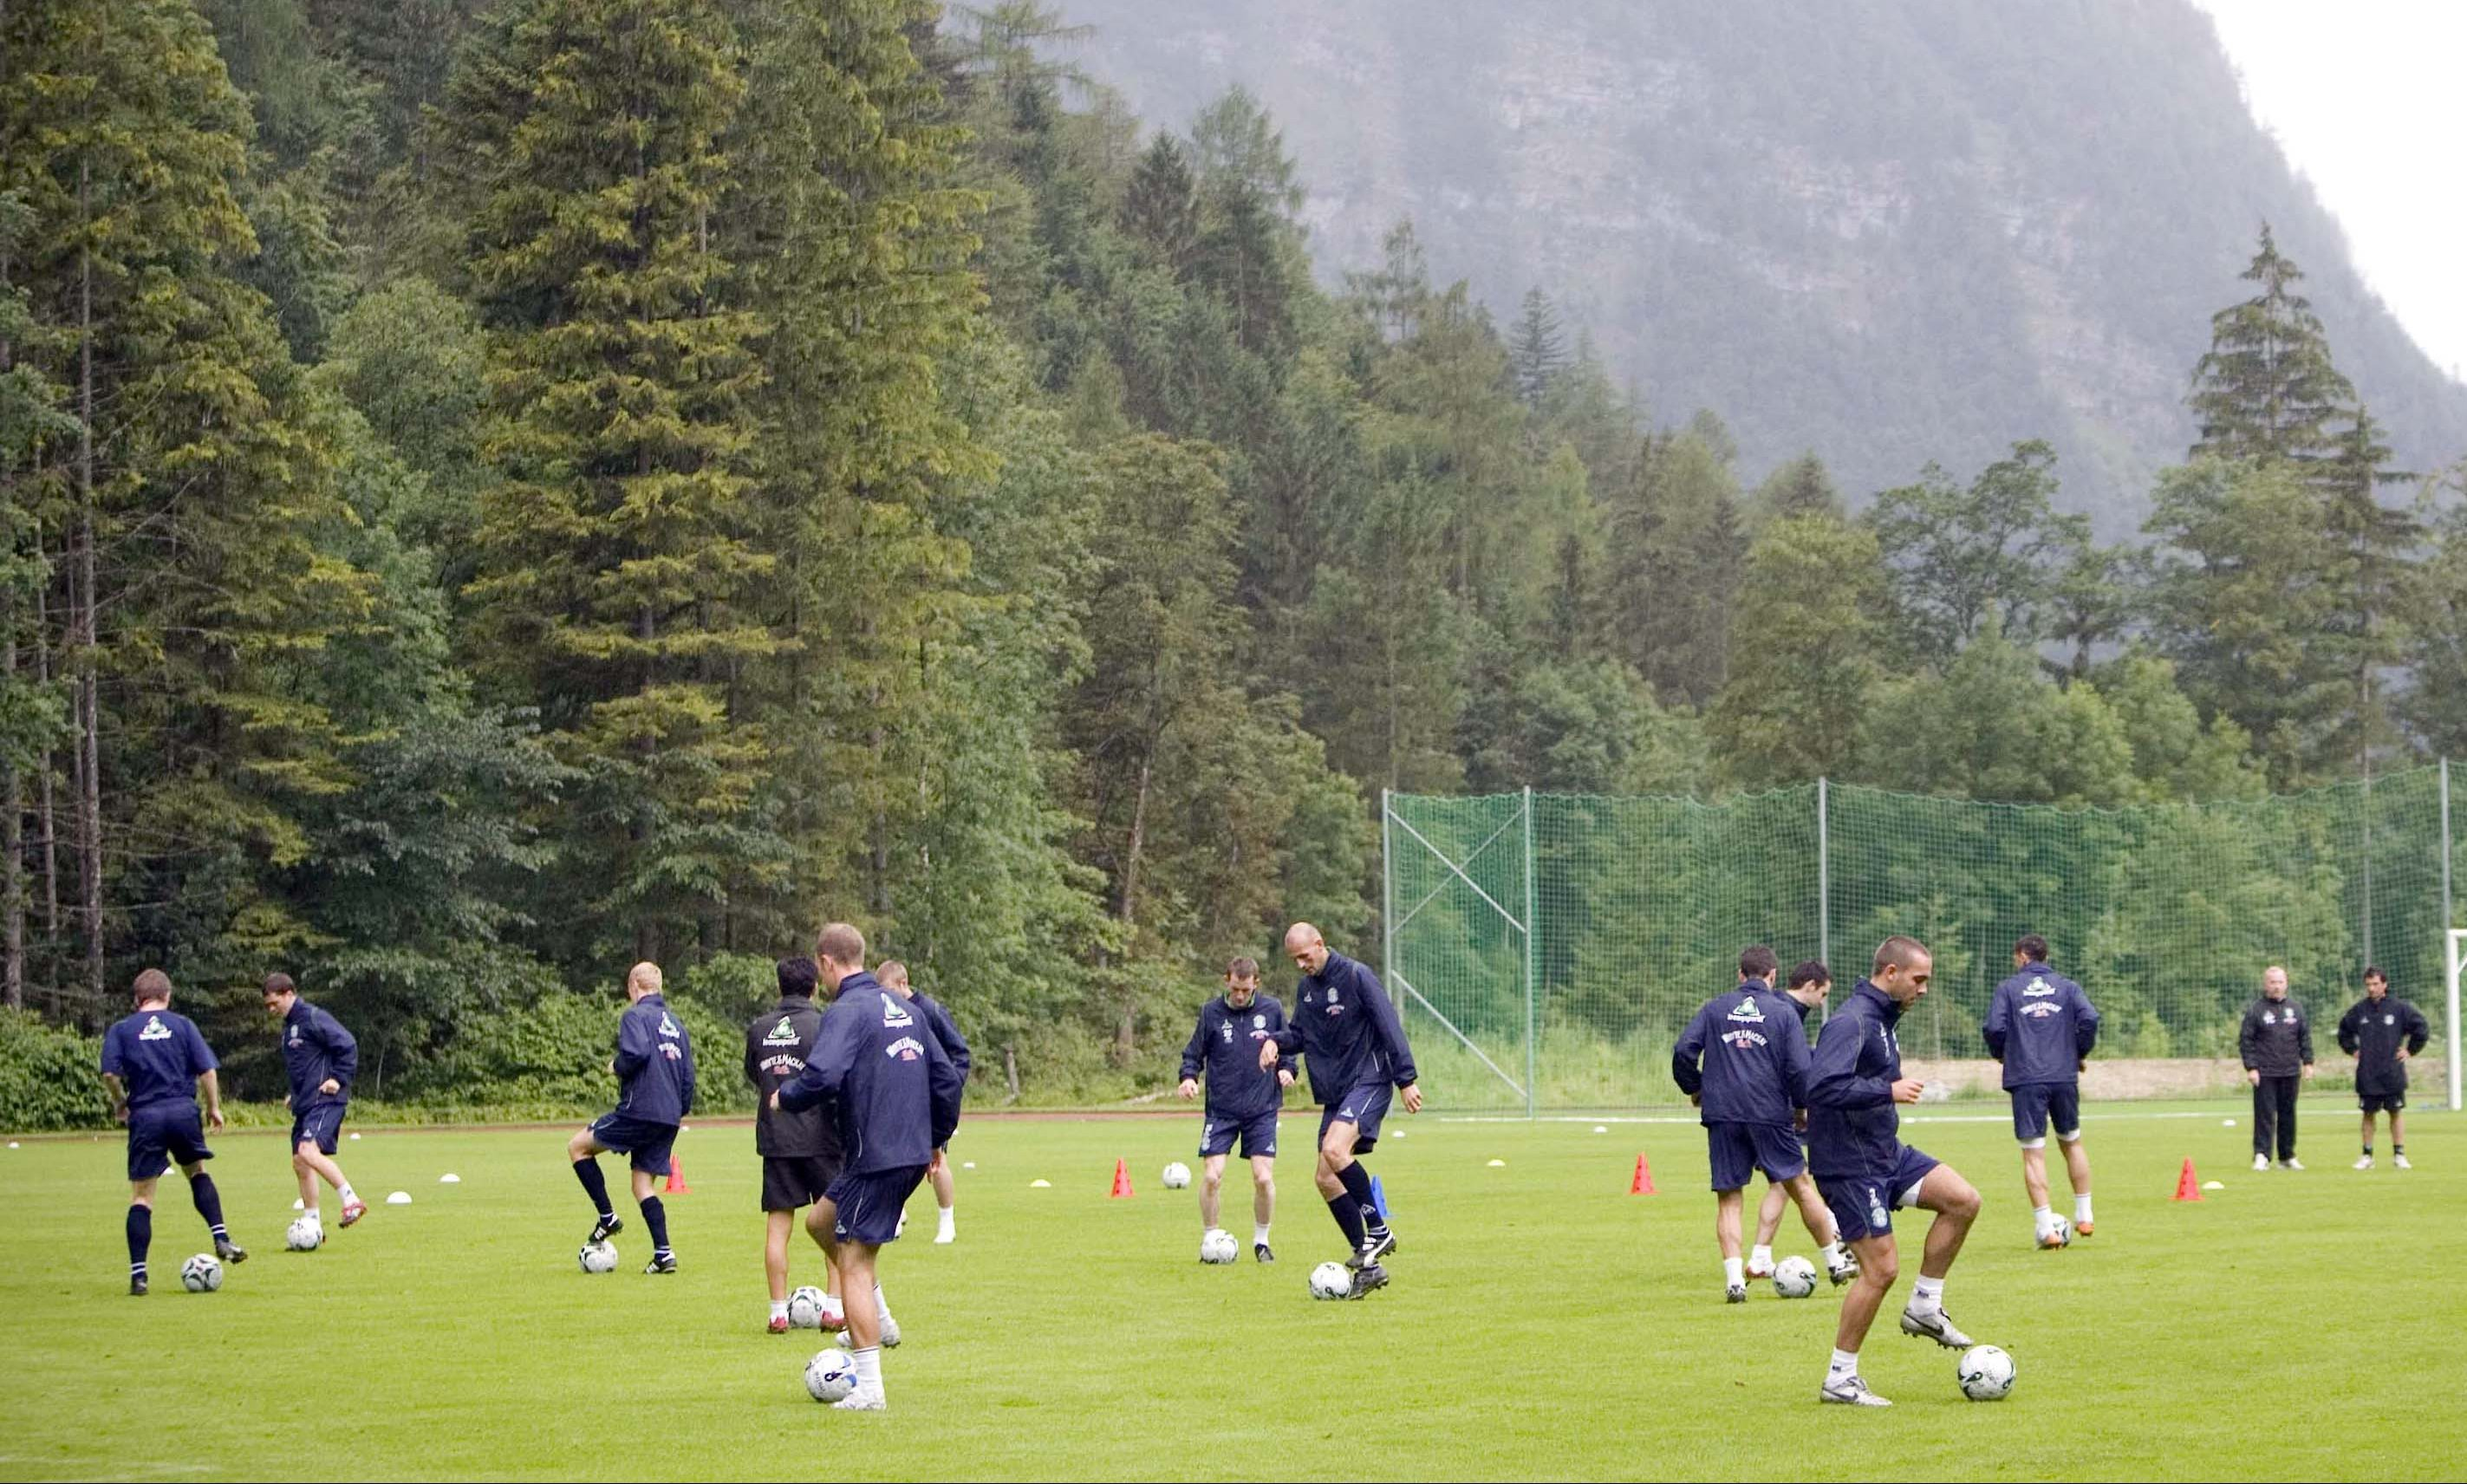 The Obertraun complex has become a popular pre-season base for Scottish sides.